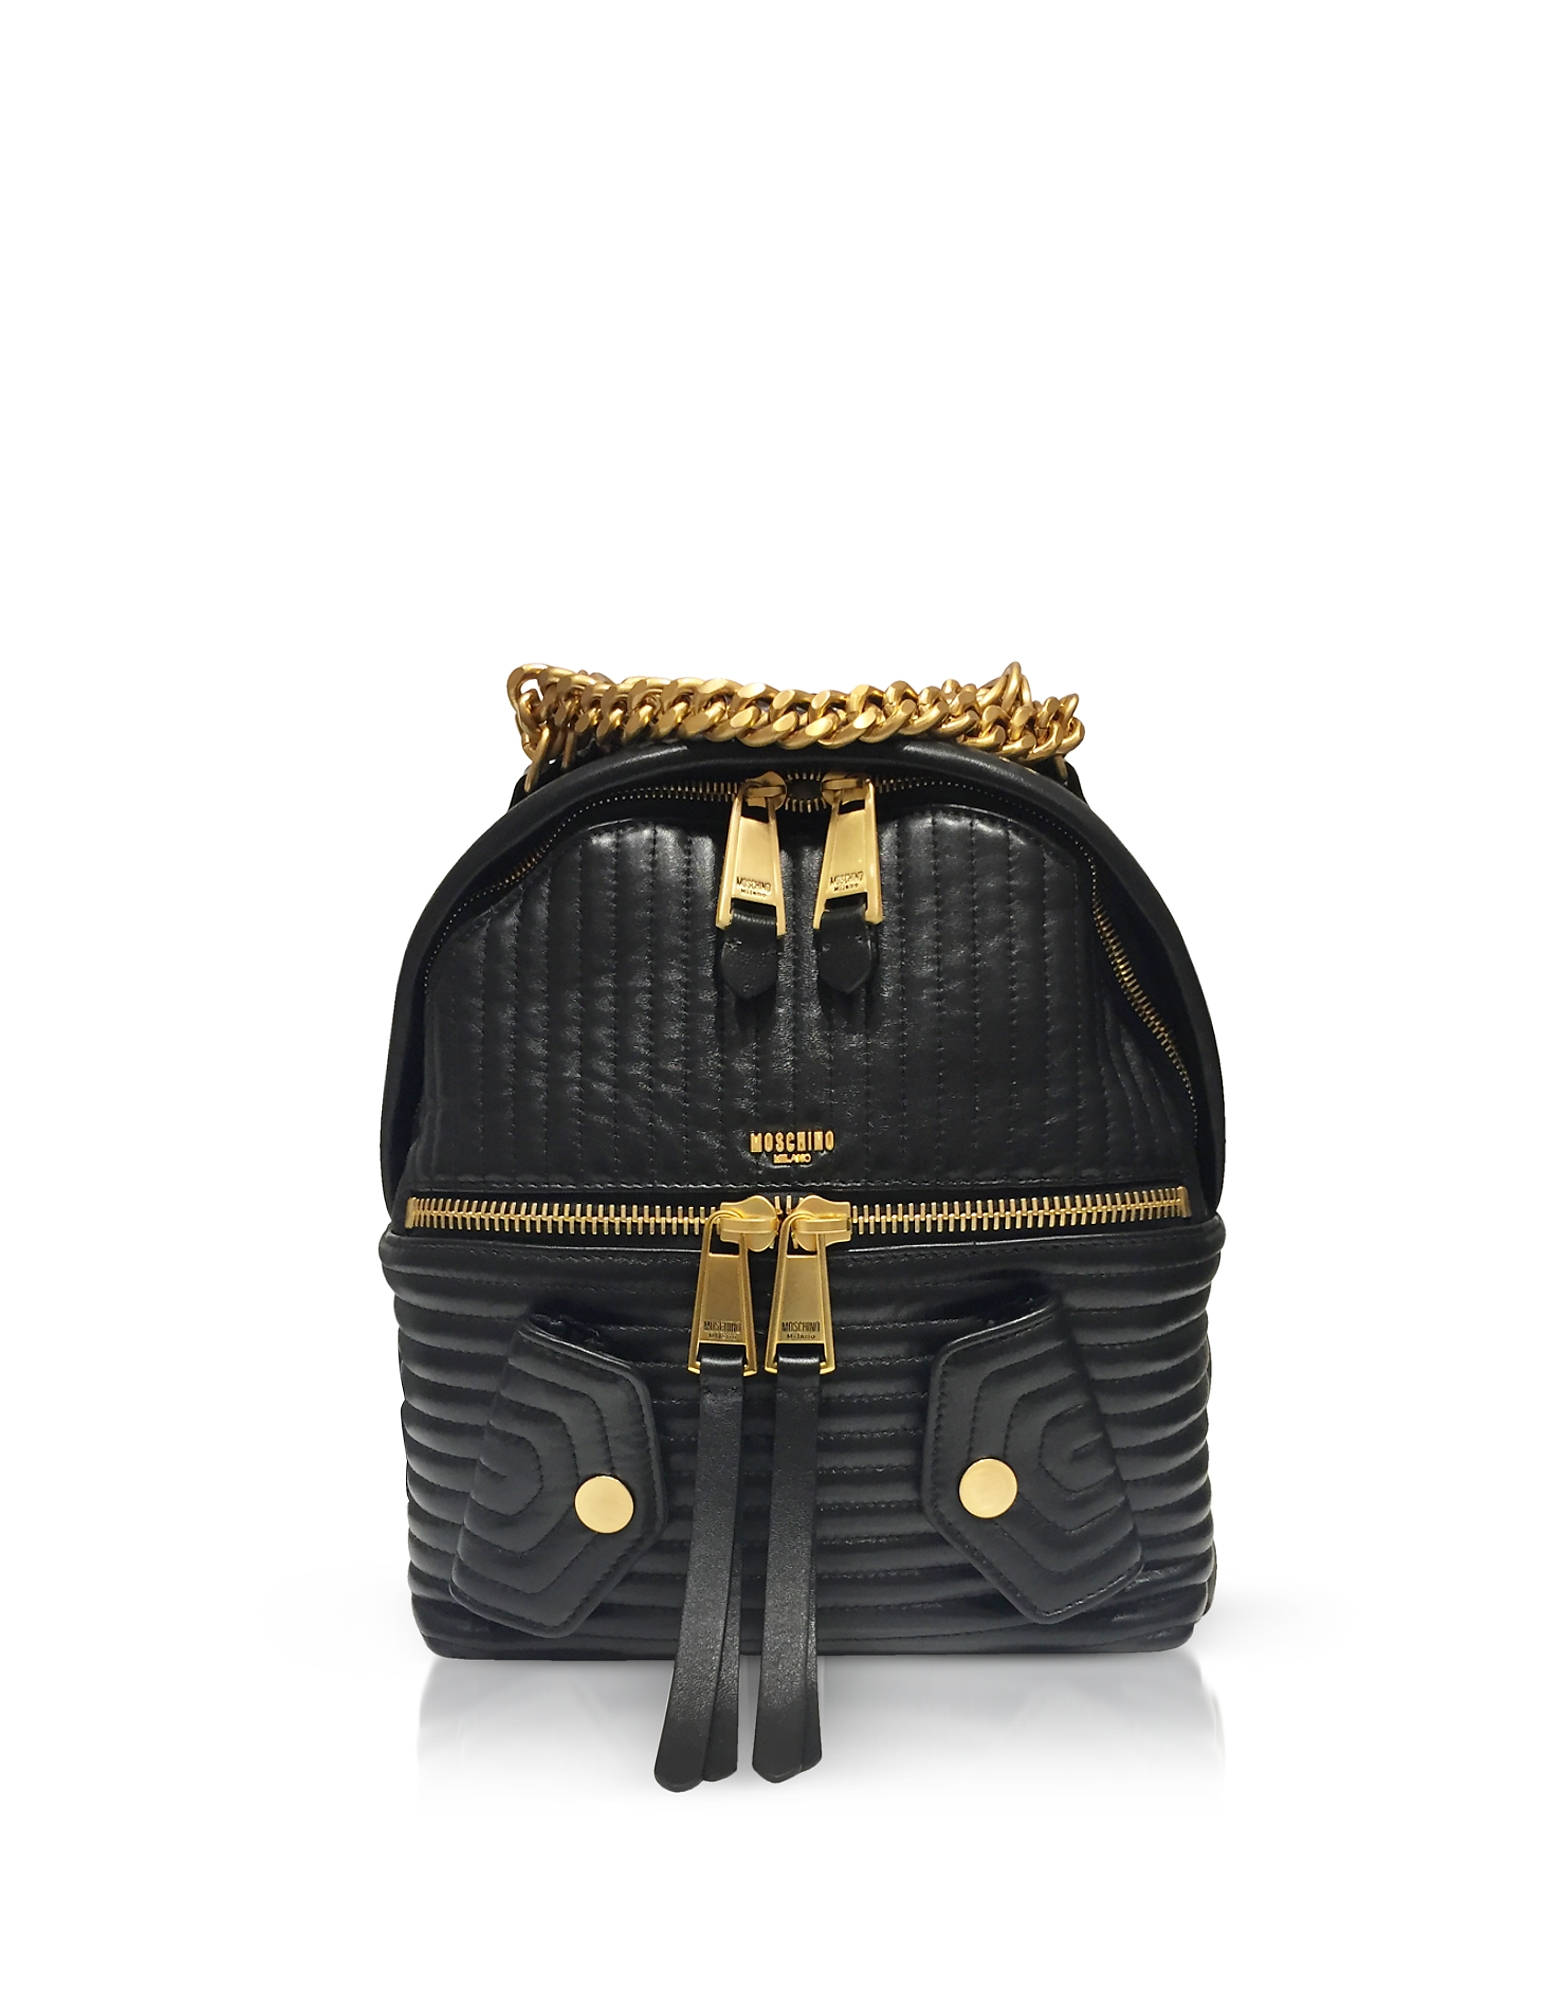 Moschino Handbags, Black Quilted Leather Backpack